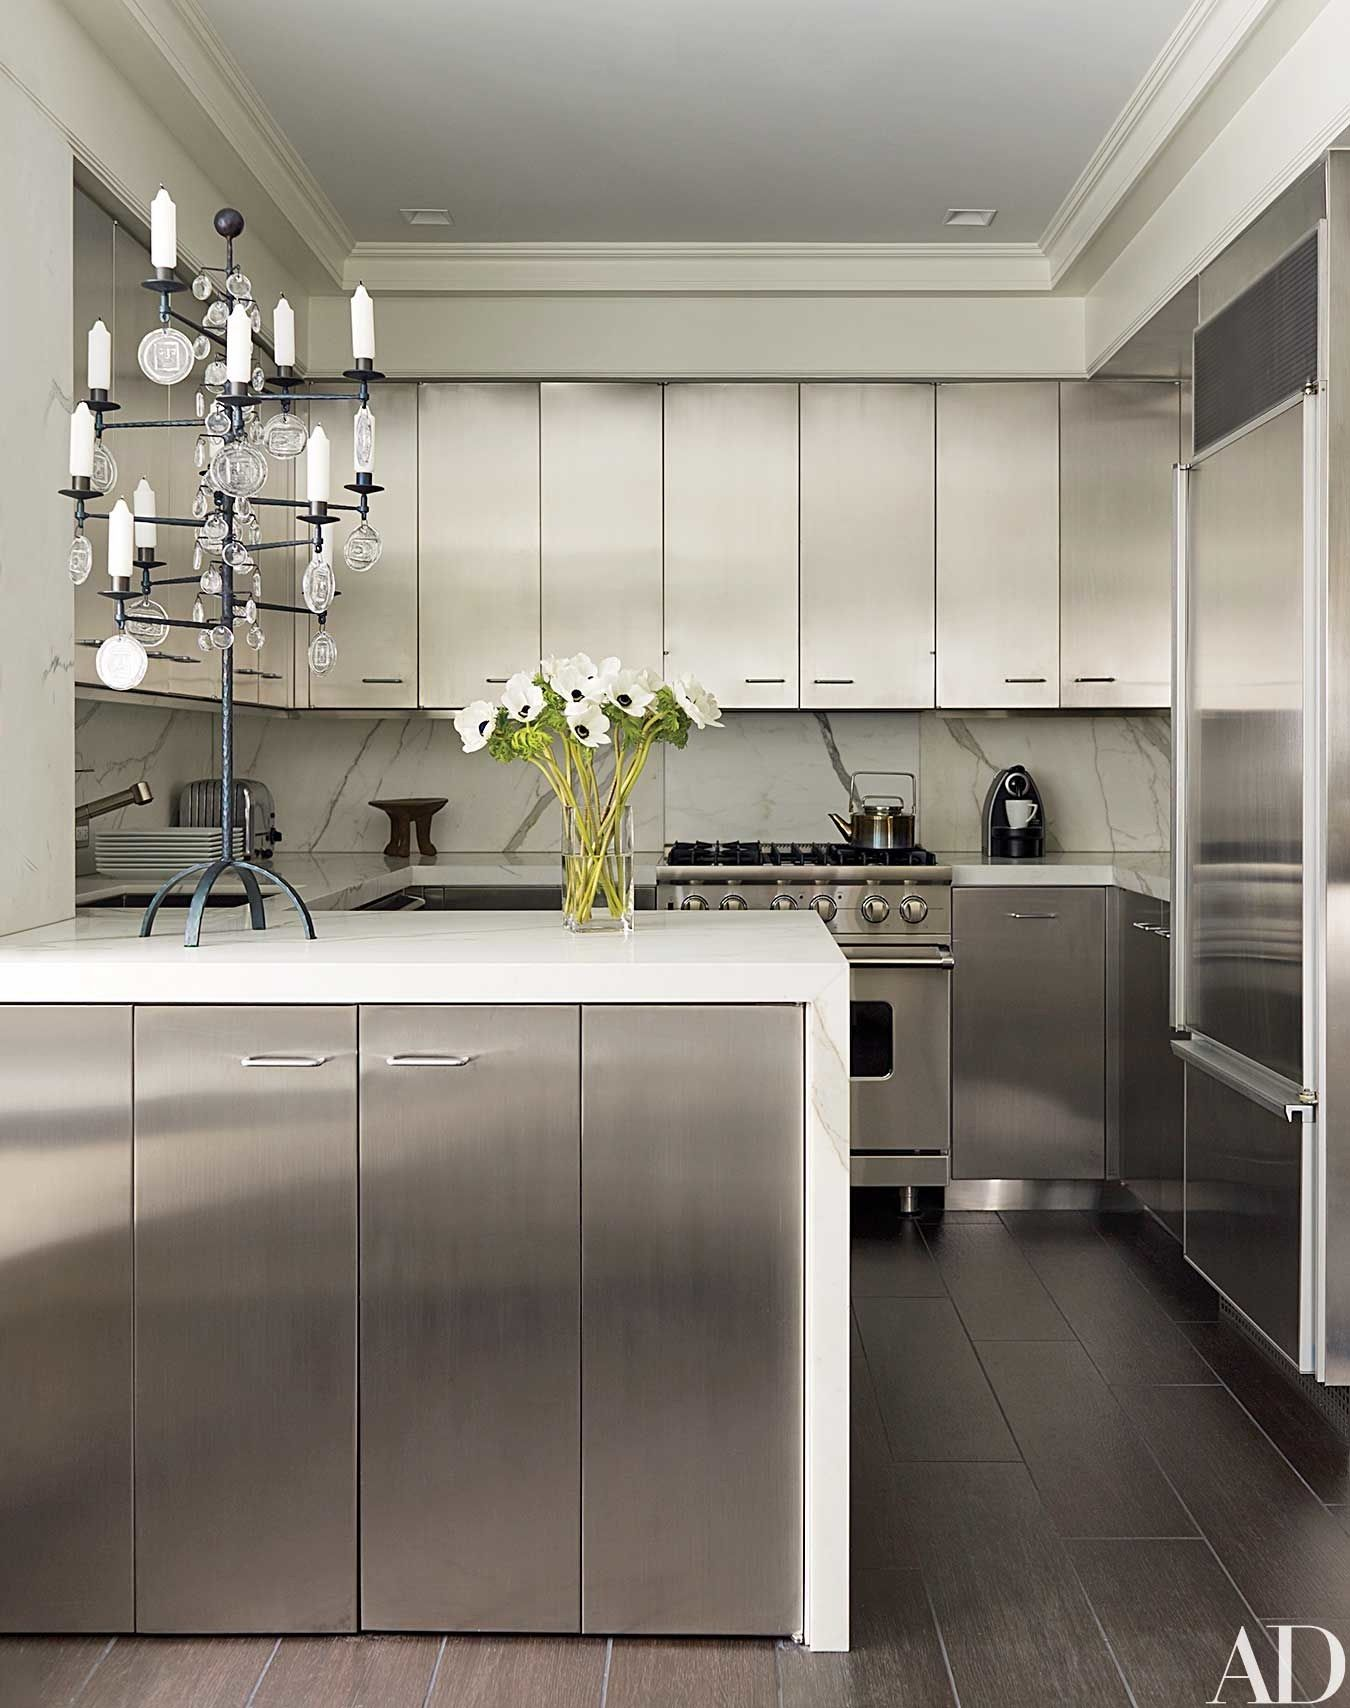 17 Kitchens With Classic Marble Countertops Kitchen Interior Kitchen Marble Stainless Kitchen